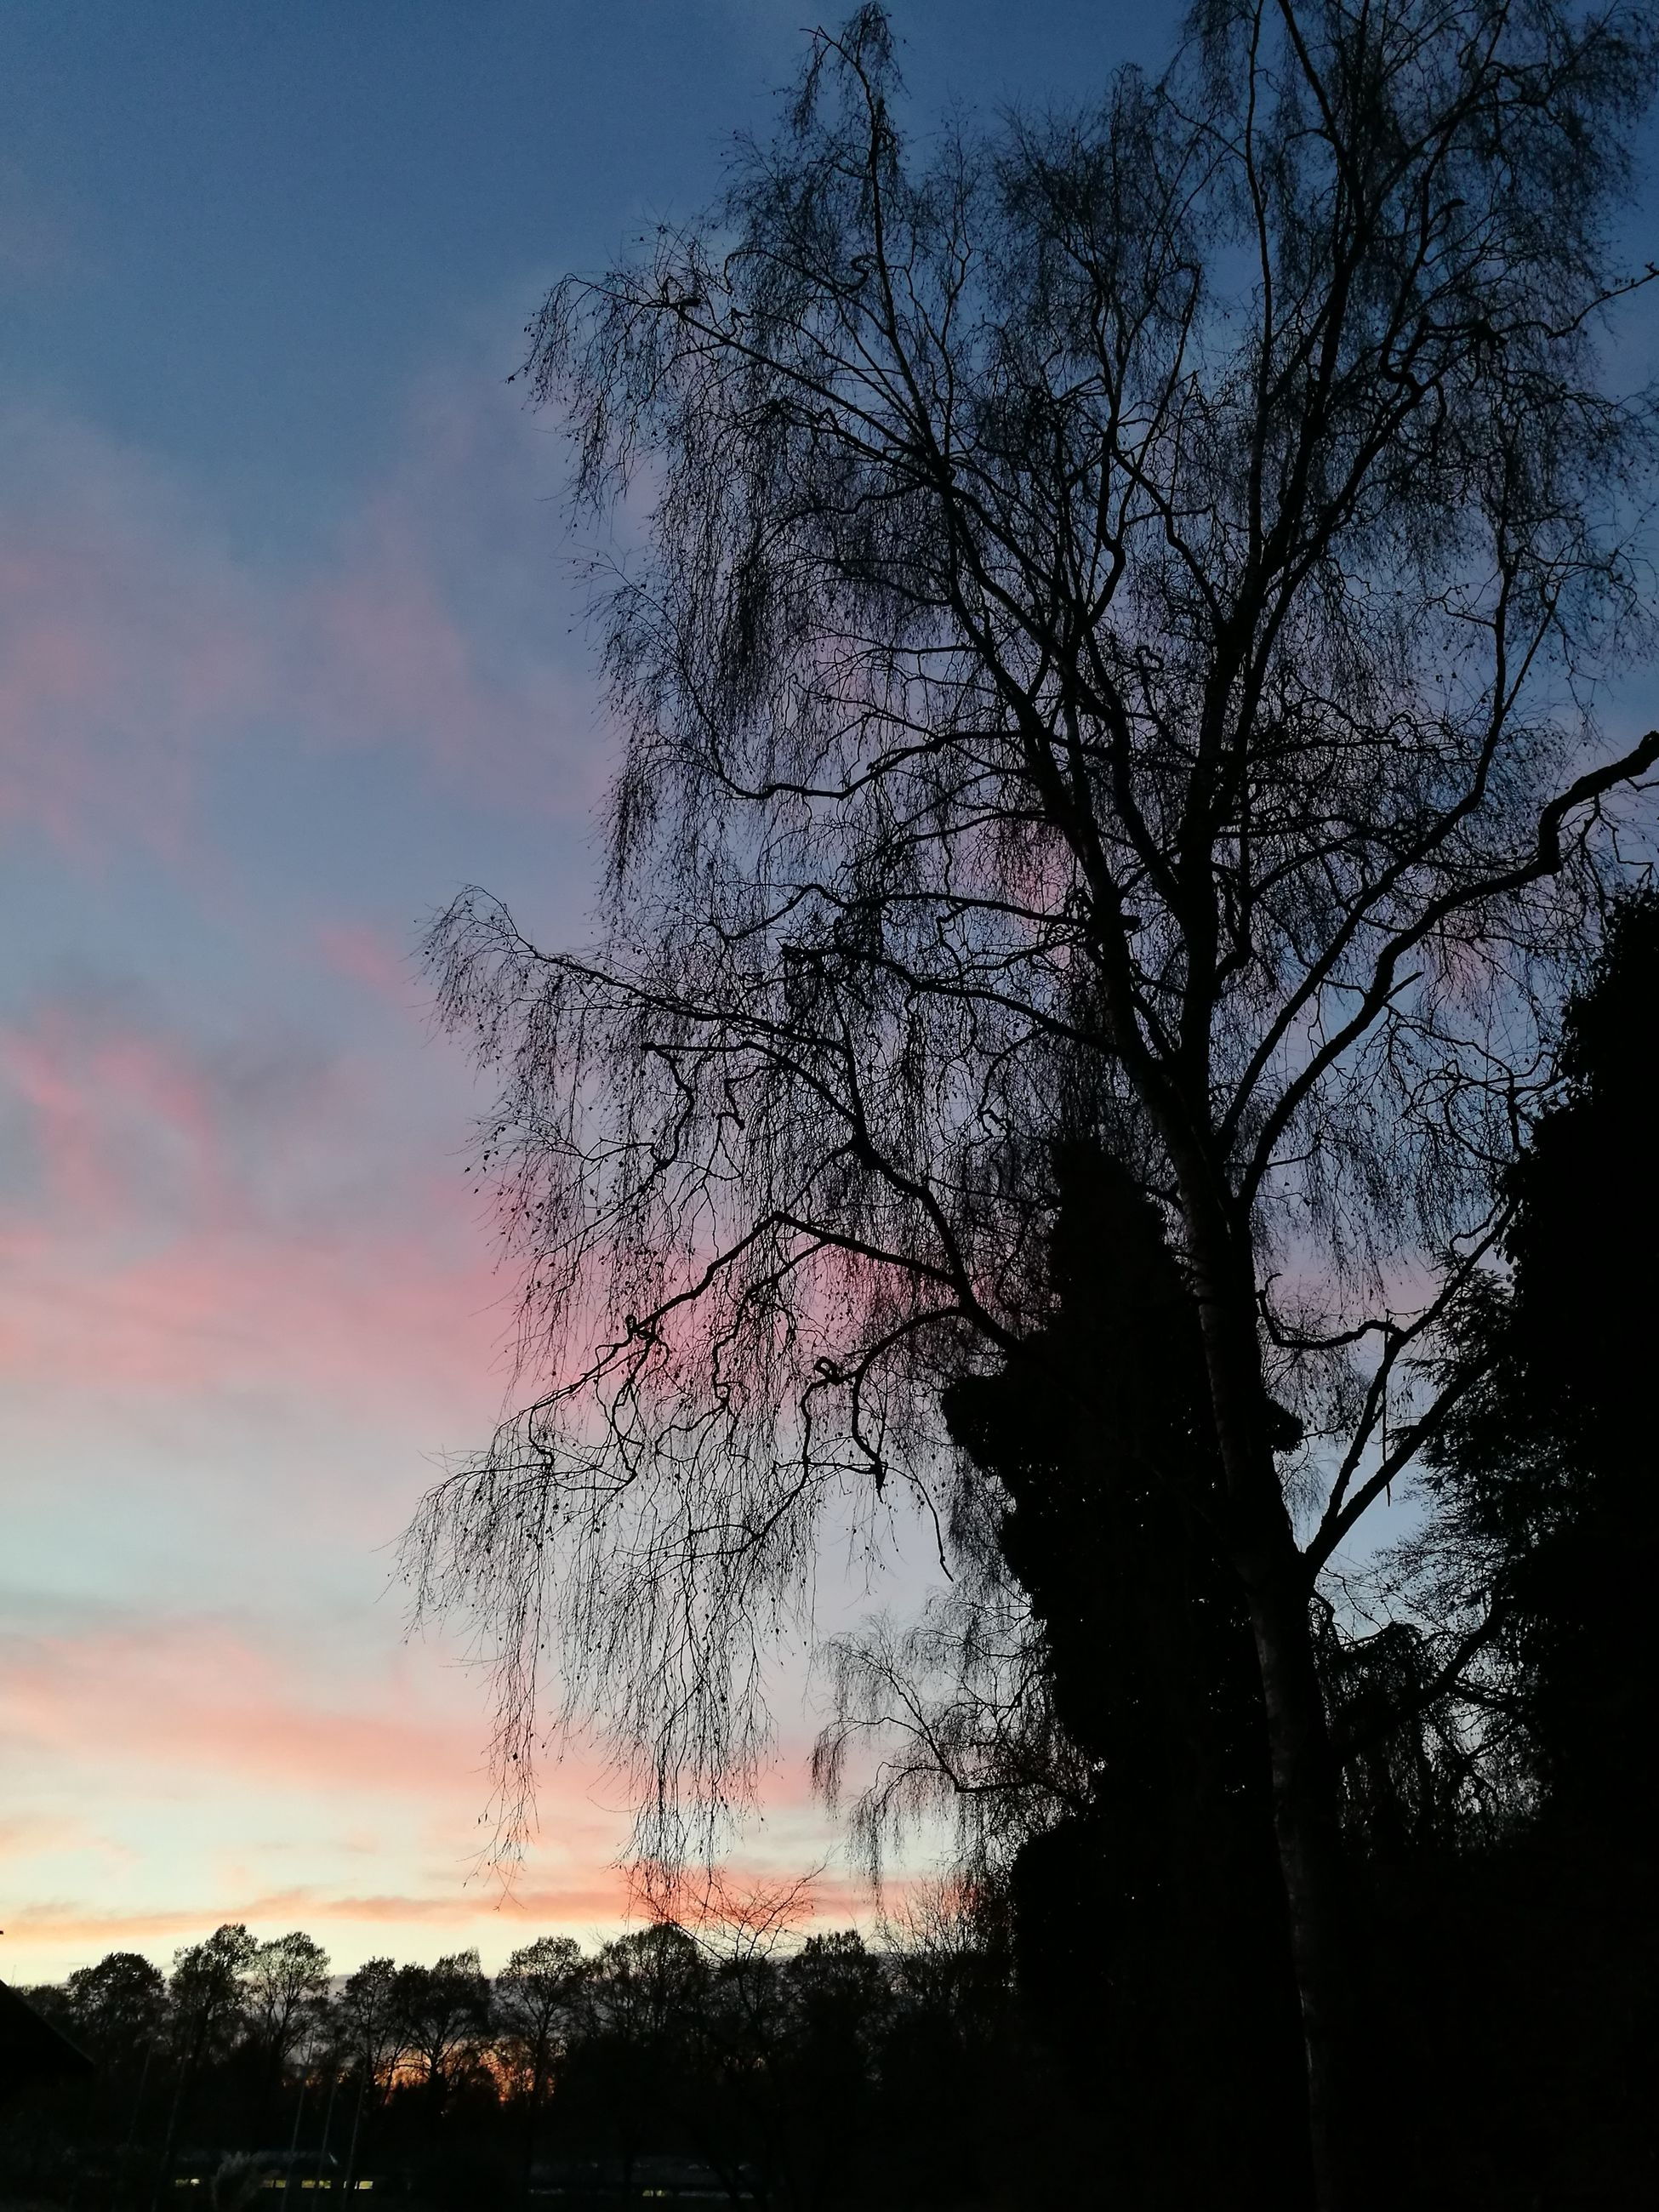 sunset, sky, nature, beauty in nature, tree, tranquility, no people, silhouette, outdoors, growth, low angle view, cloud - sky, day